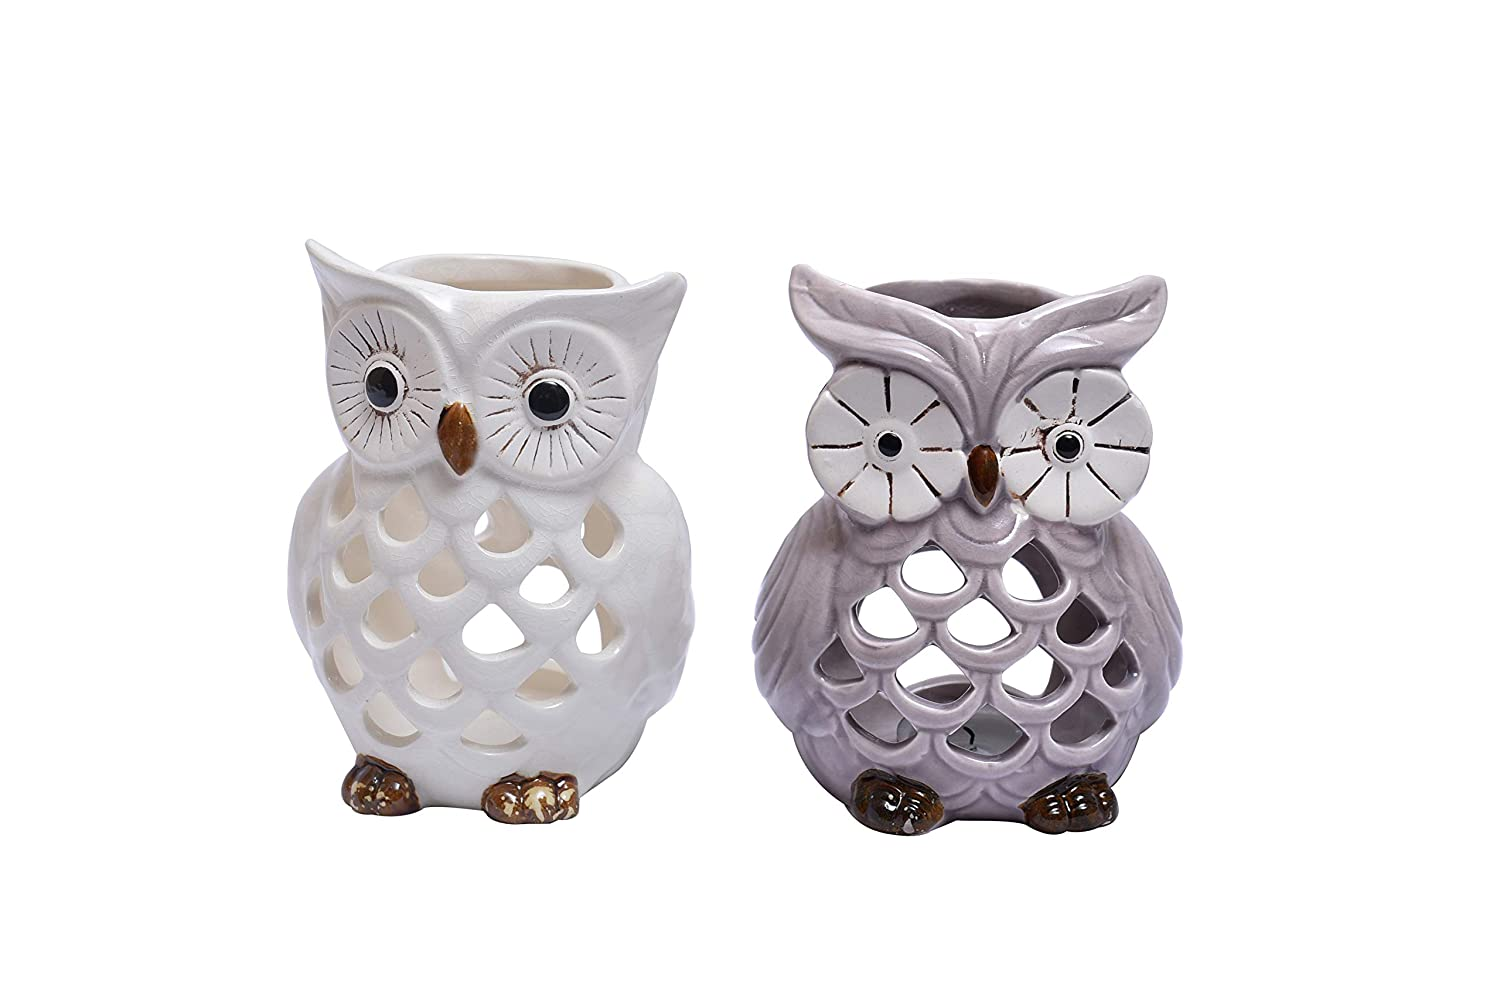 Decozen Lucky Owl Tea Light Holders Set of 2 use with T Light Candles in Vintage and Modern Interiors Home Decor Table D/écor Console Table Side Table Living Room Guest Room Study Room Kitchen Decor